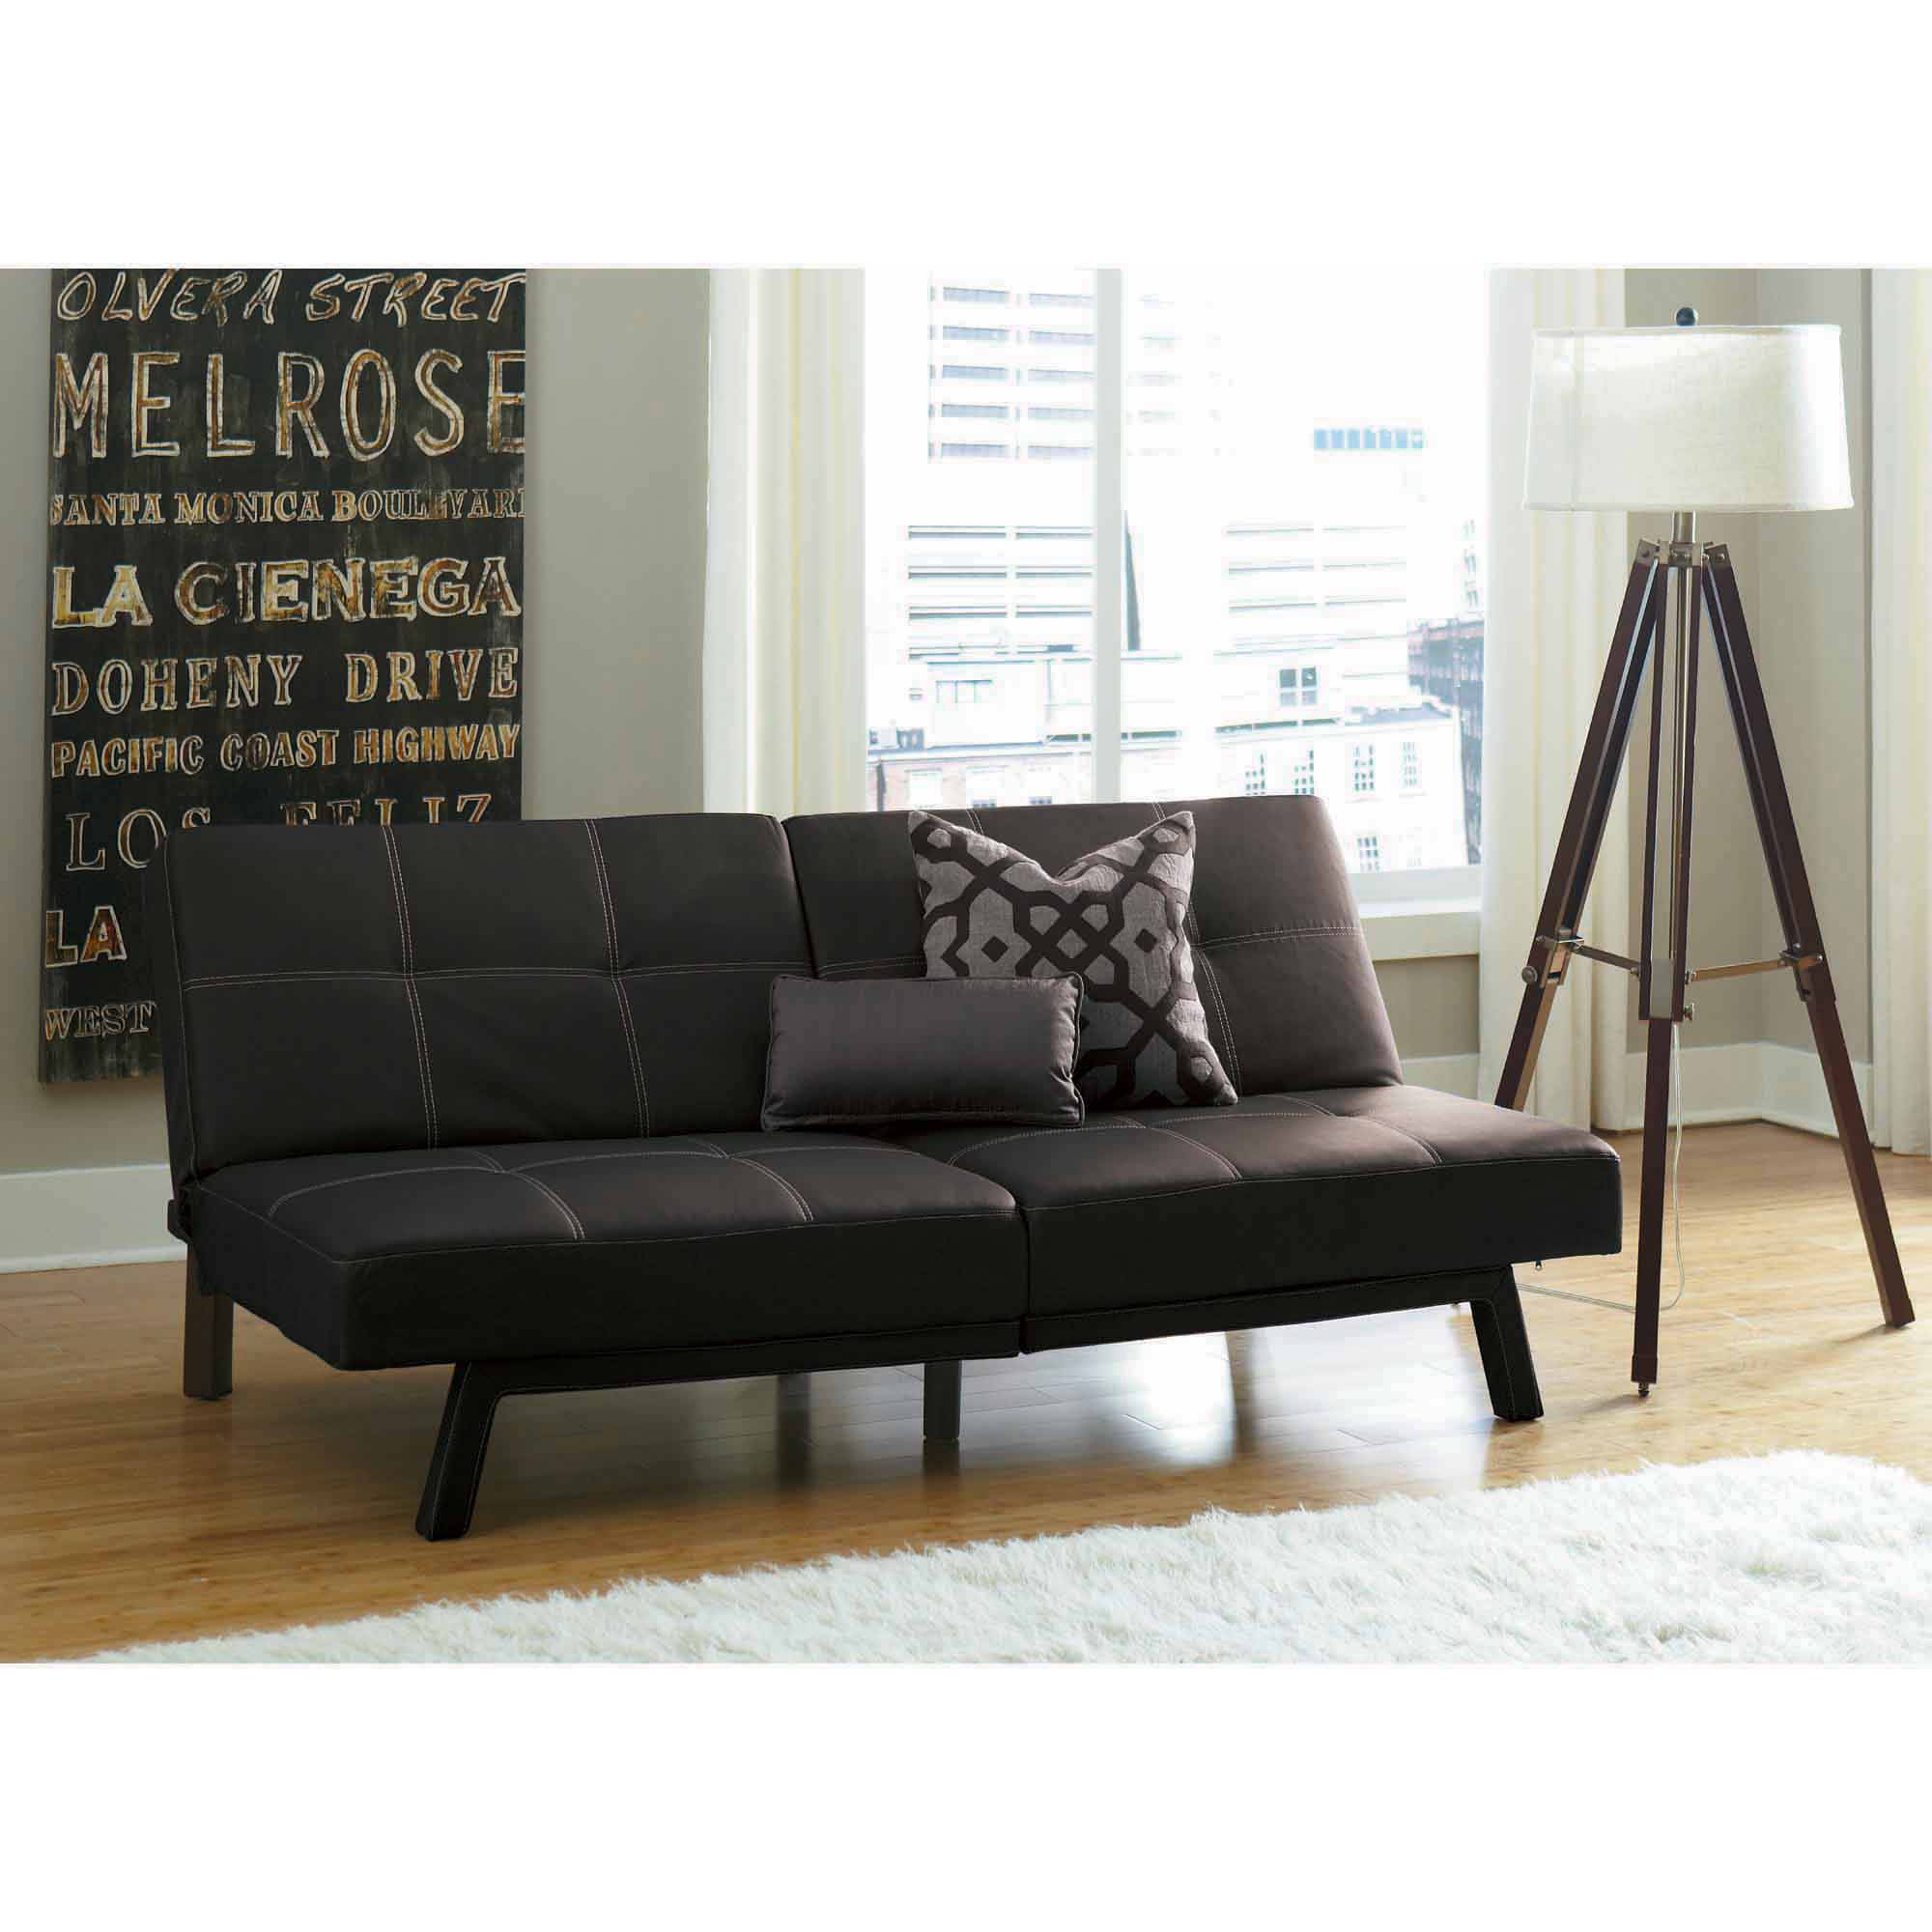 Delaney Living Room Furniture Collection Walmart within Walmart Living Room Sets